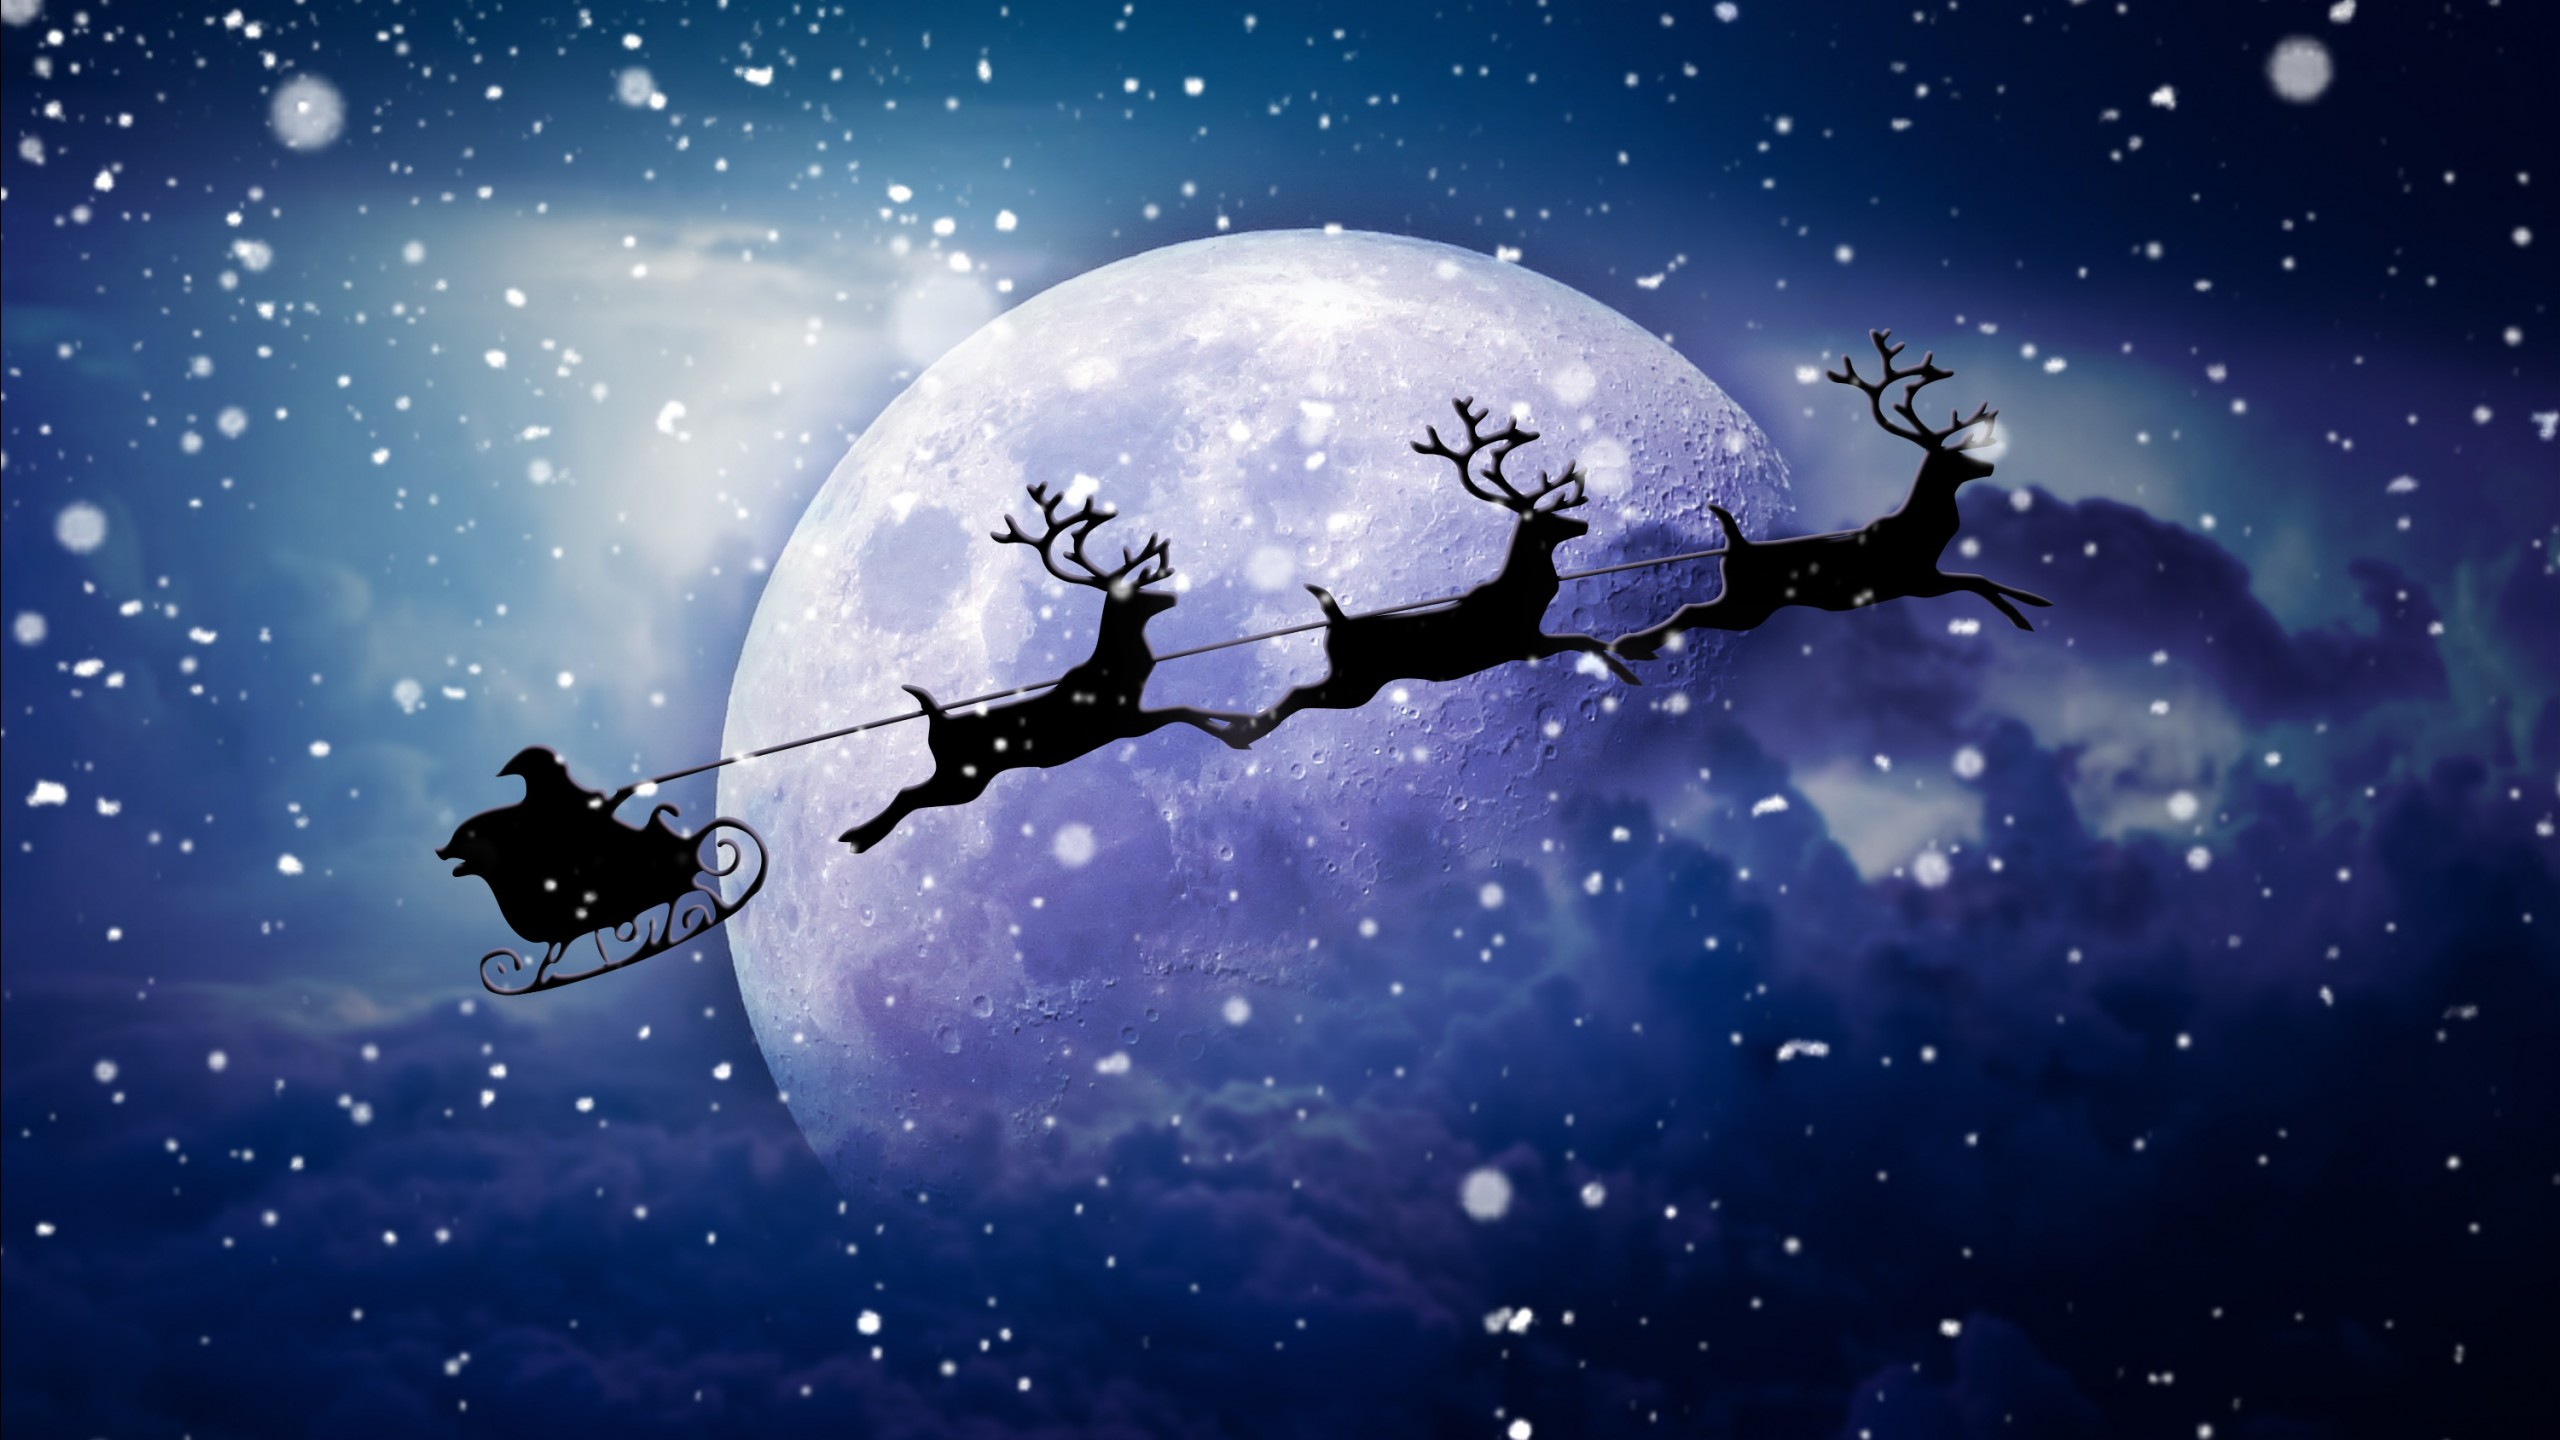 Inspirational Iphone Wallpaper Santa Reindeer Chariot Moon Wallpapers Hd Wallpapers